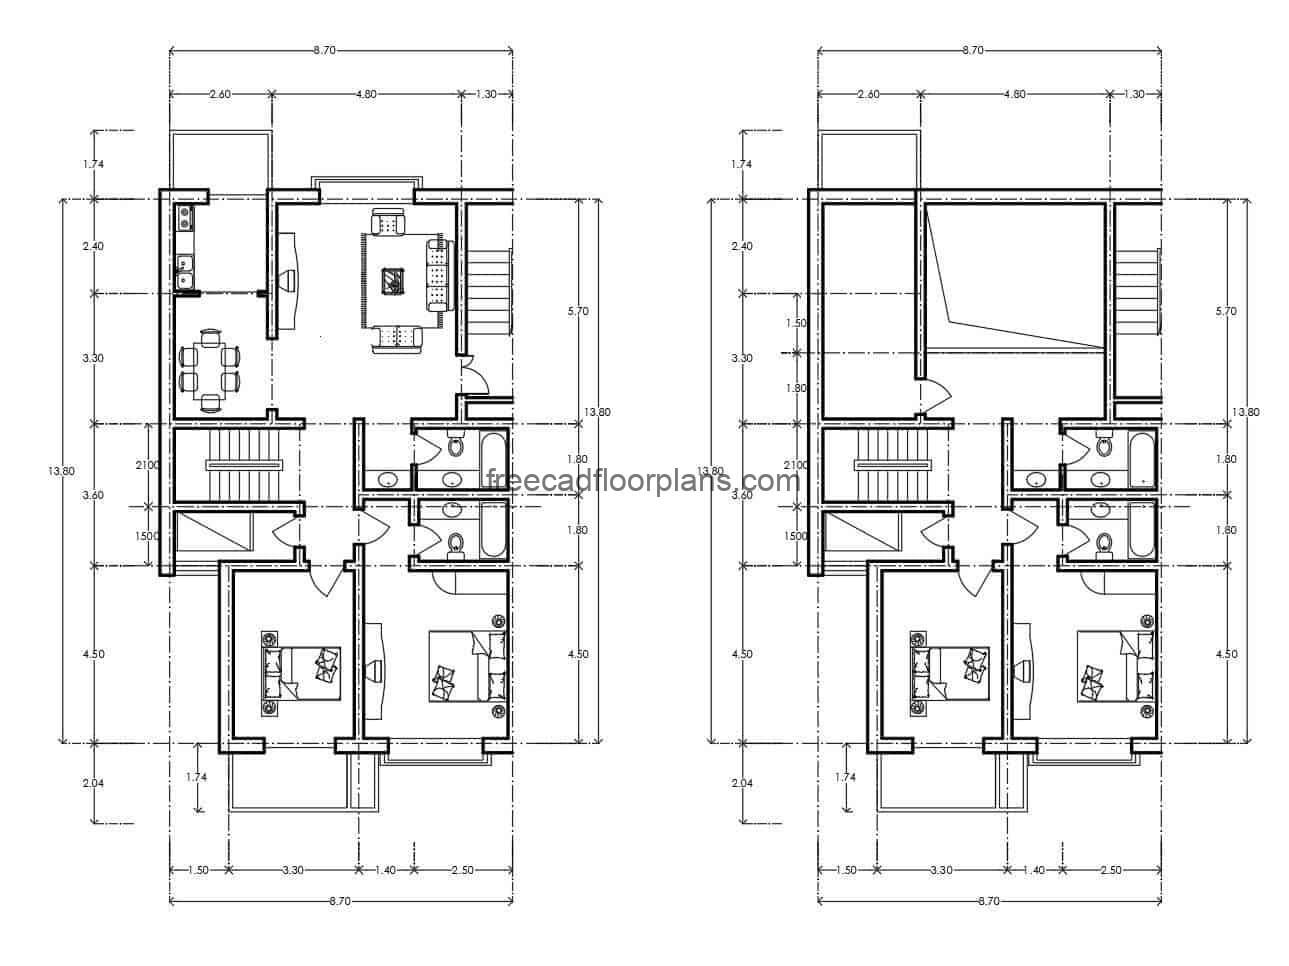 Architectural project of residential apartment in a plant with dimensions and distribution of spaces in DWG format of autocad, the project has room, kitchen, dining room, and private area with three bedrooms and two bathrooms.